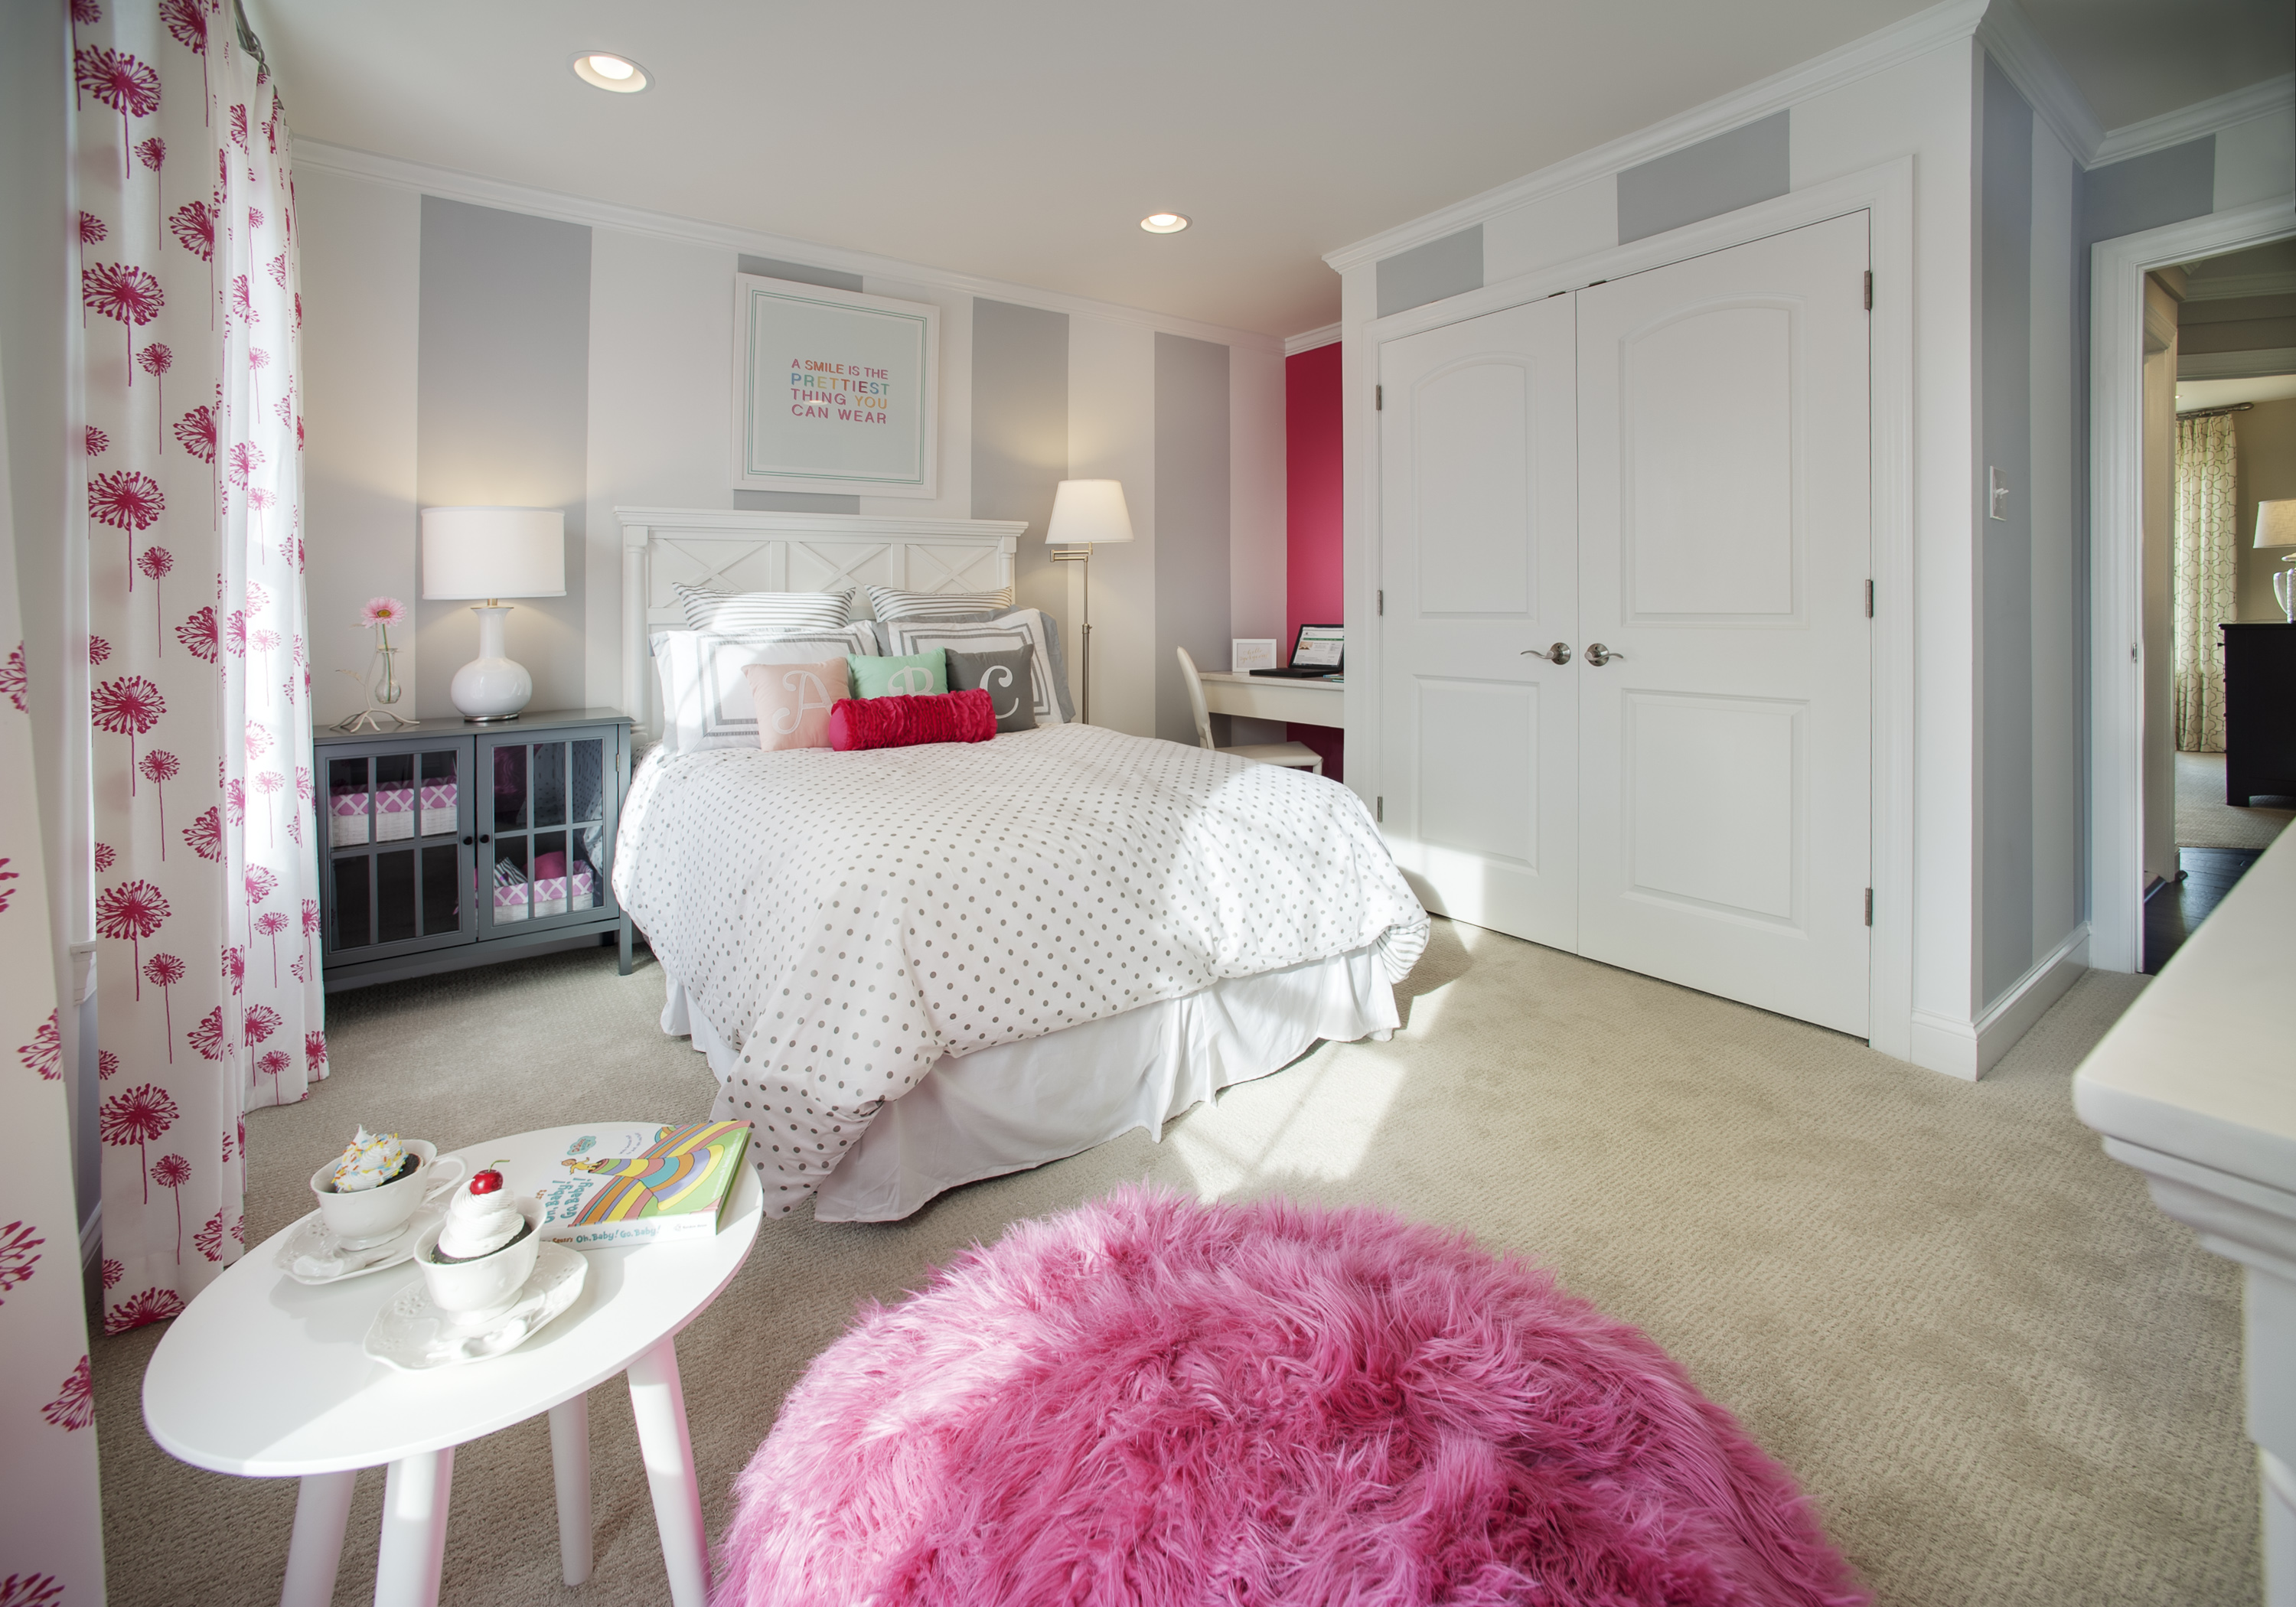 BUCKS COUNTY PA - GIRLS BEDROOM